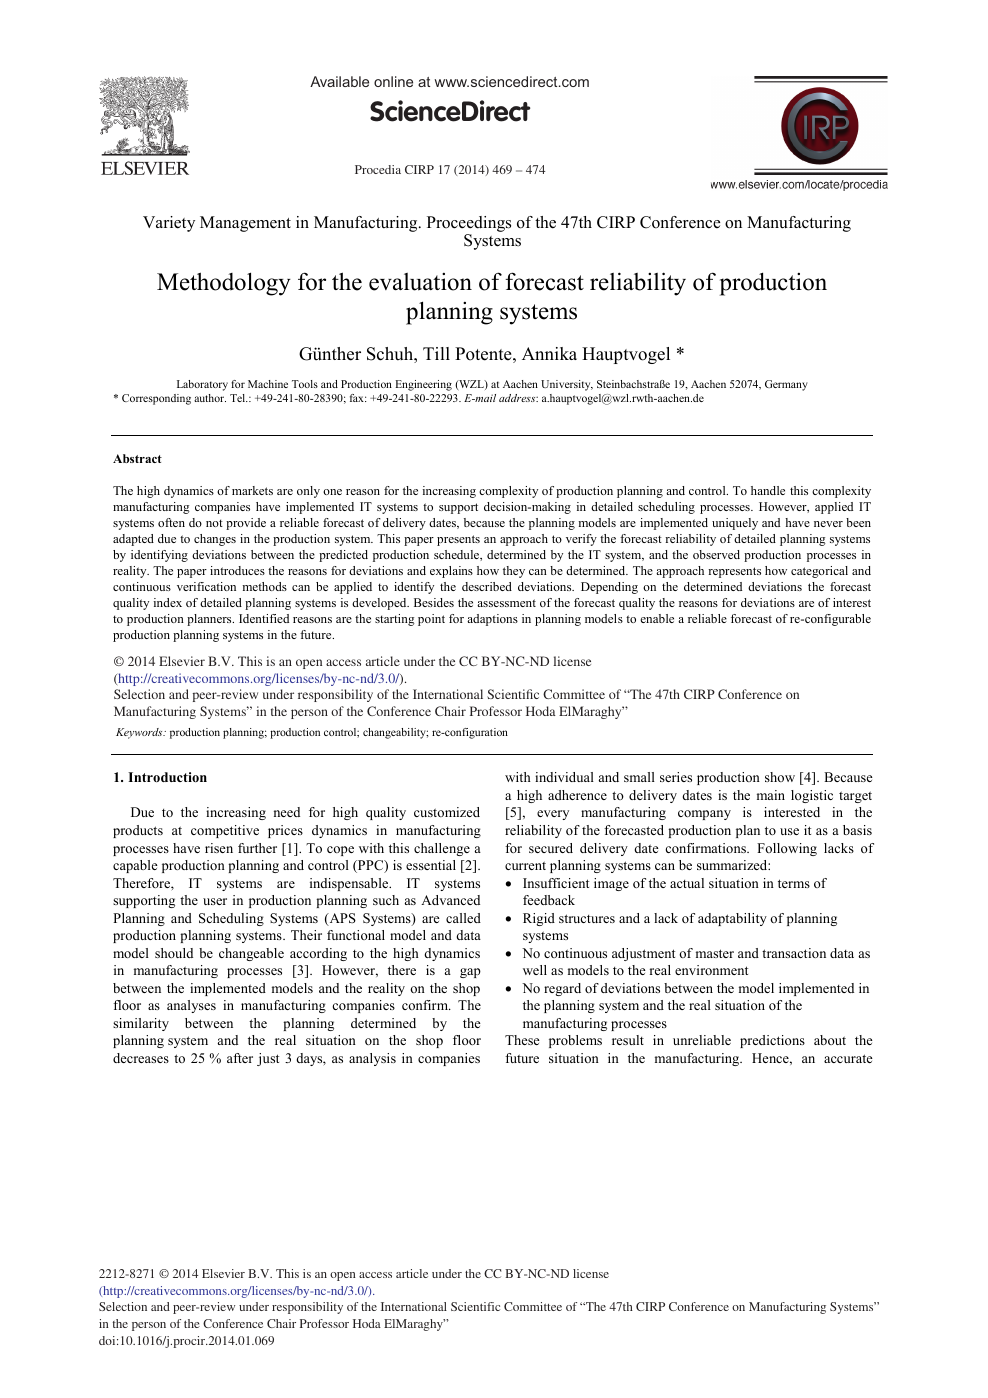 Methodology for the Evaluation of Forecast Reliability of